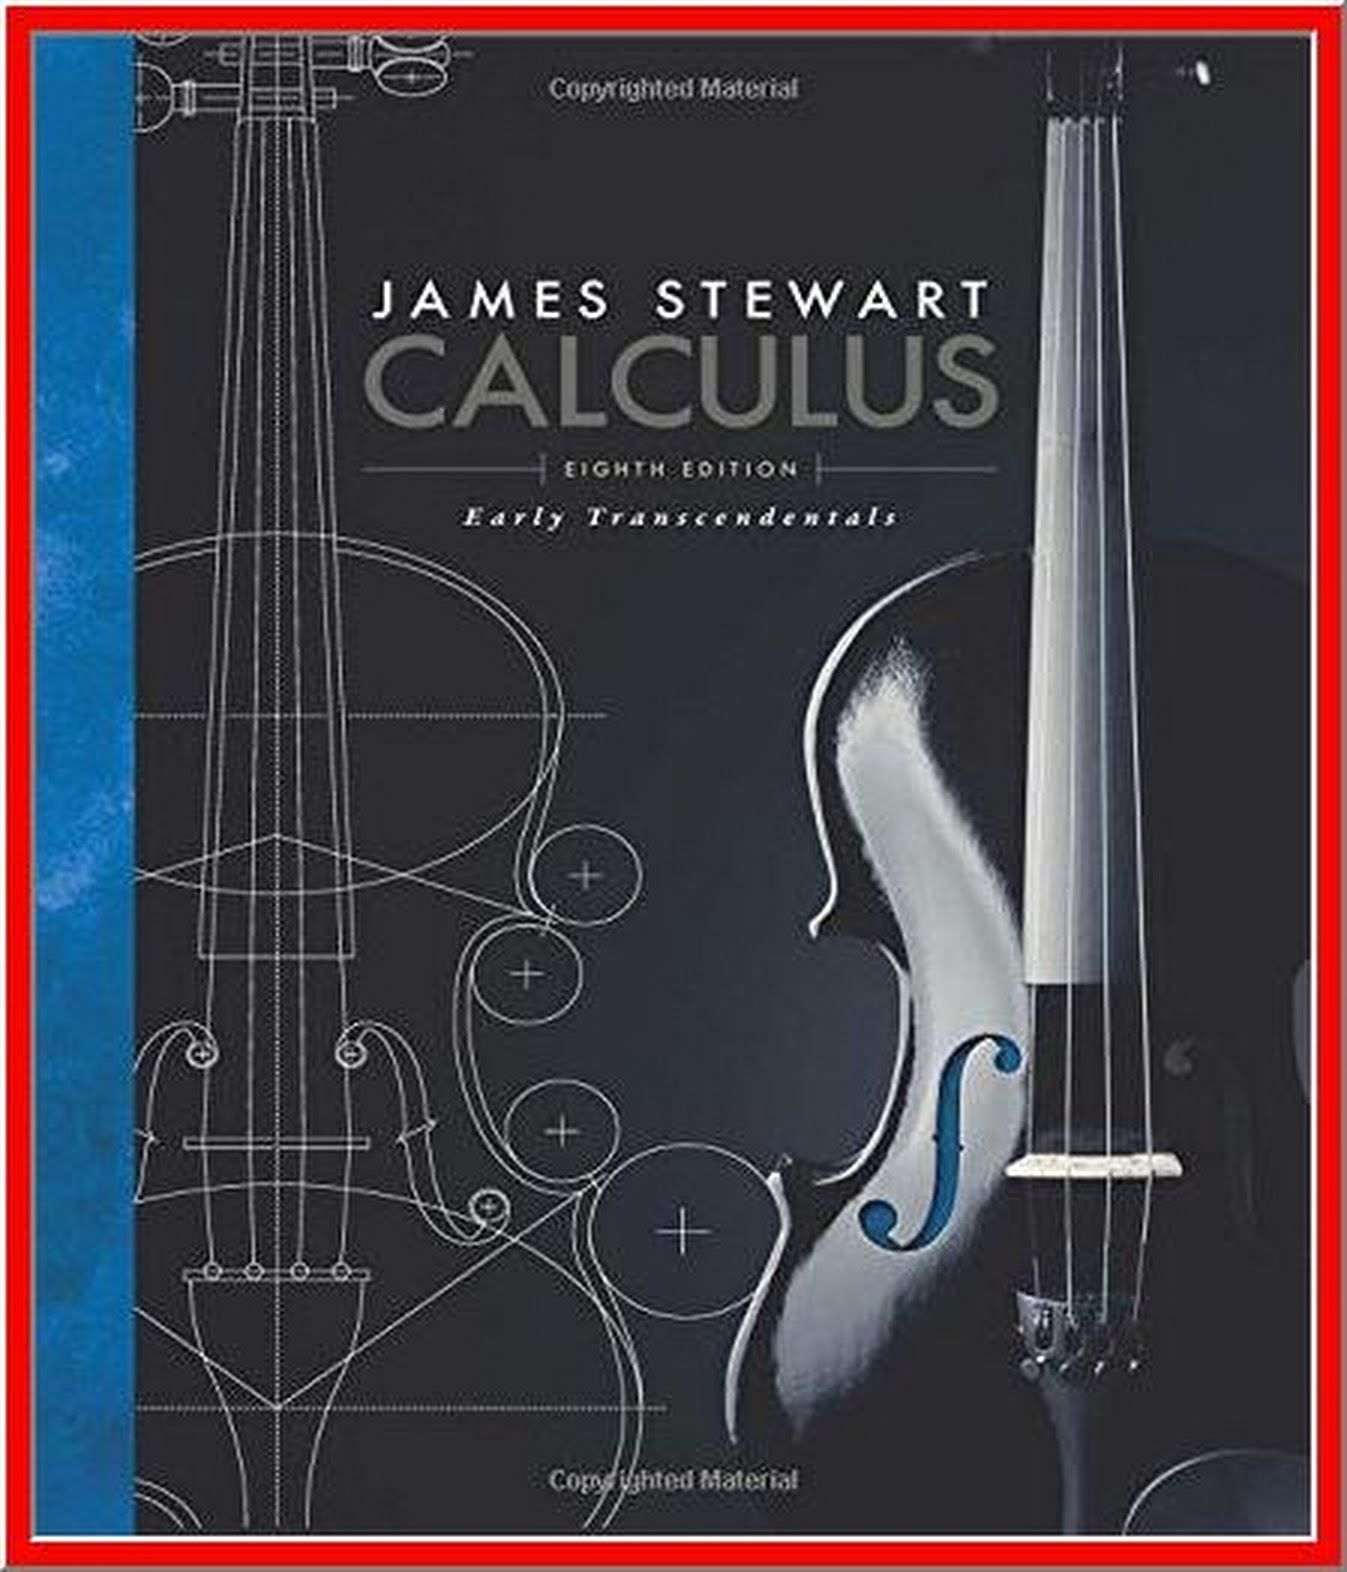 stewart calculus 4th edition homework hints